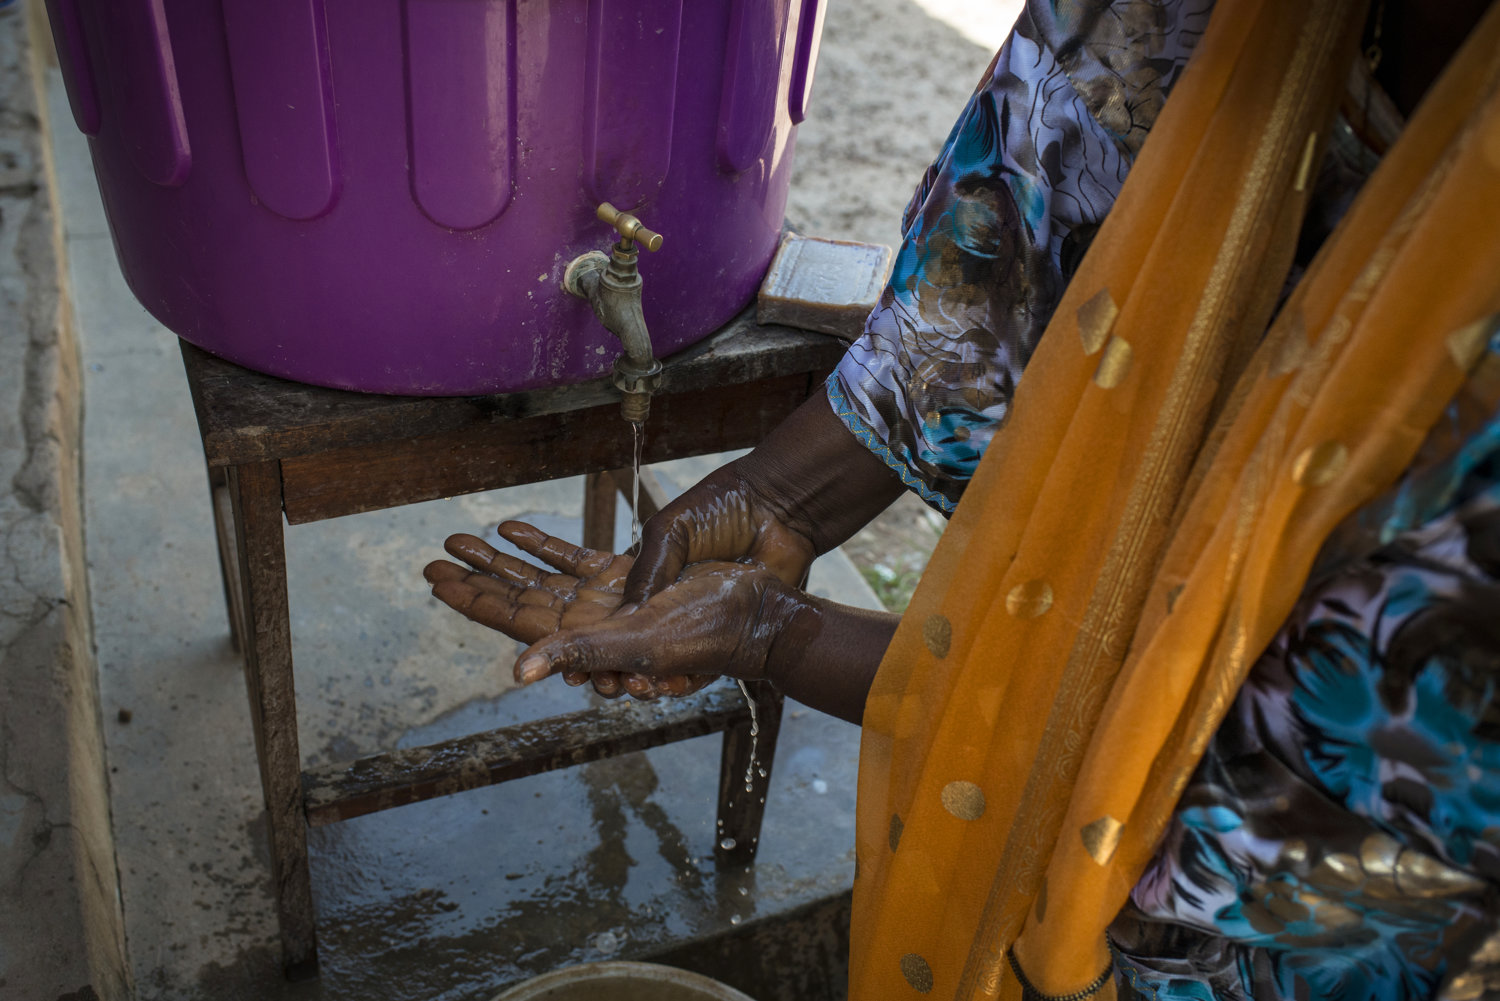 At a rural clinic patients as well as visitors must wash their hands in chlorinated water before entering the health post- the most rural of health clinics available in Guinea. This post is in Heriko, a village outside of Faranah, Guinea on November 19th, 2015.